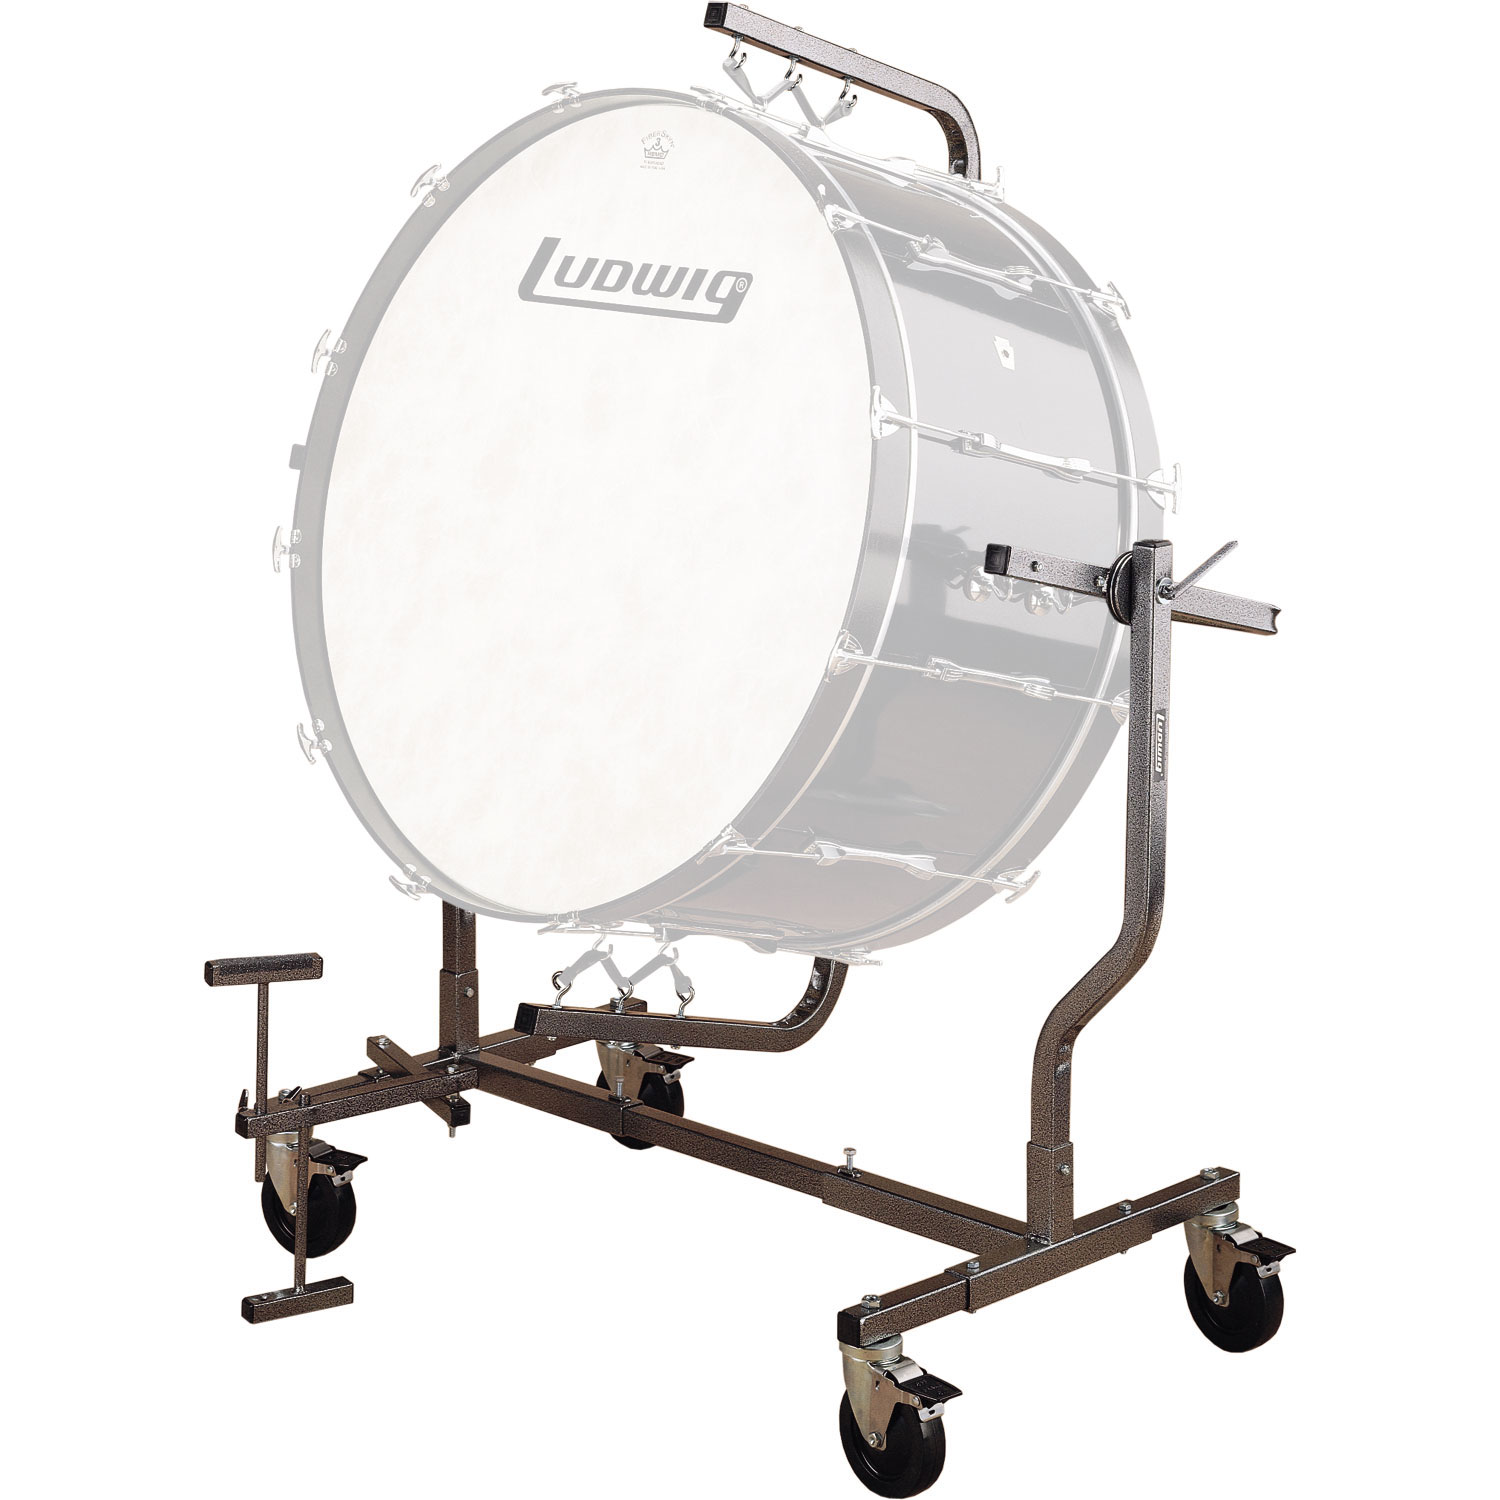 Ludwig All-Terrain Suspended Concert Bass Drum Stand